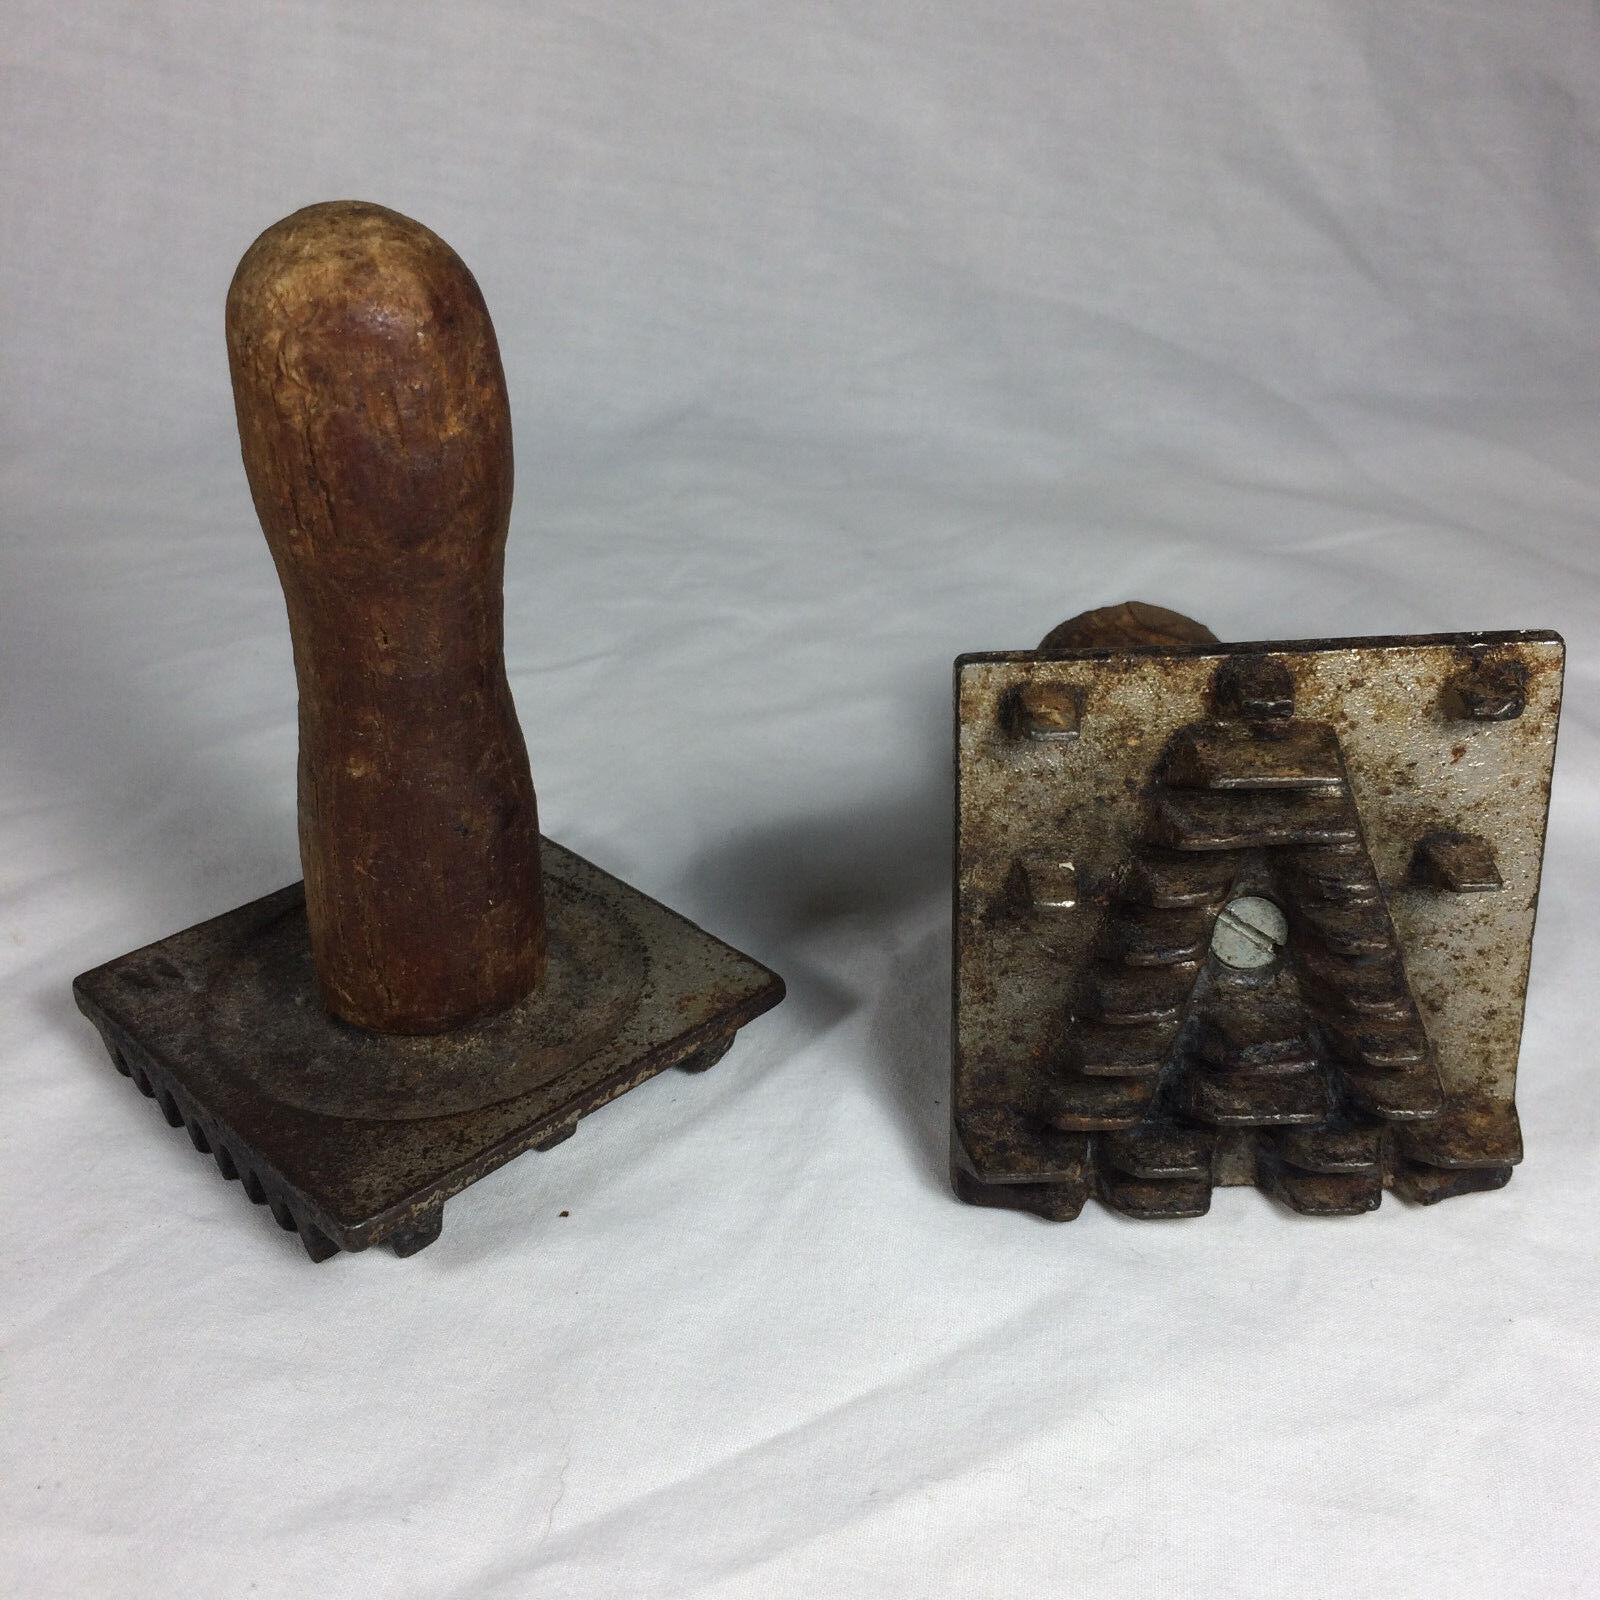 Metal COOKIE PRESS MOLD (PIE CRUST STAMP) W  WOOD HANDLE Vintage Set of 2 A M